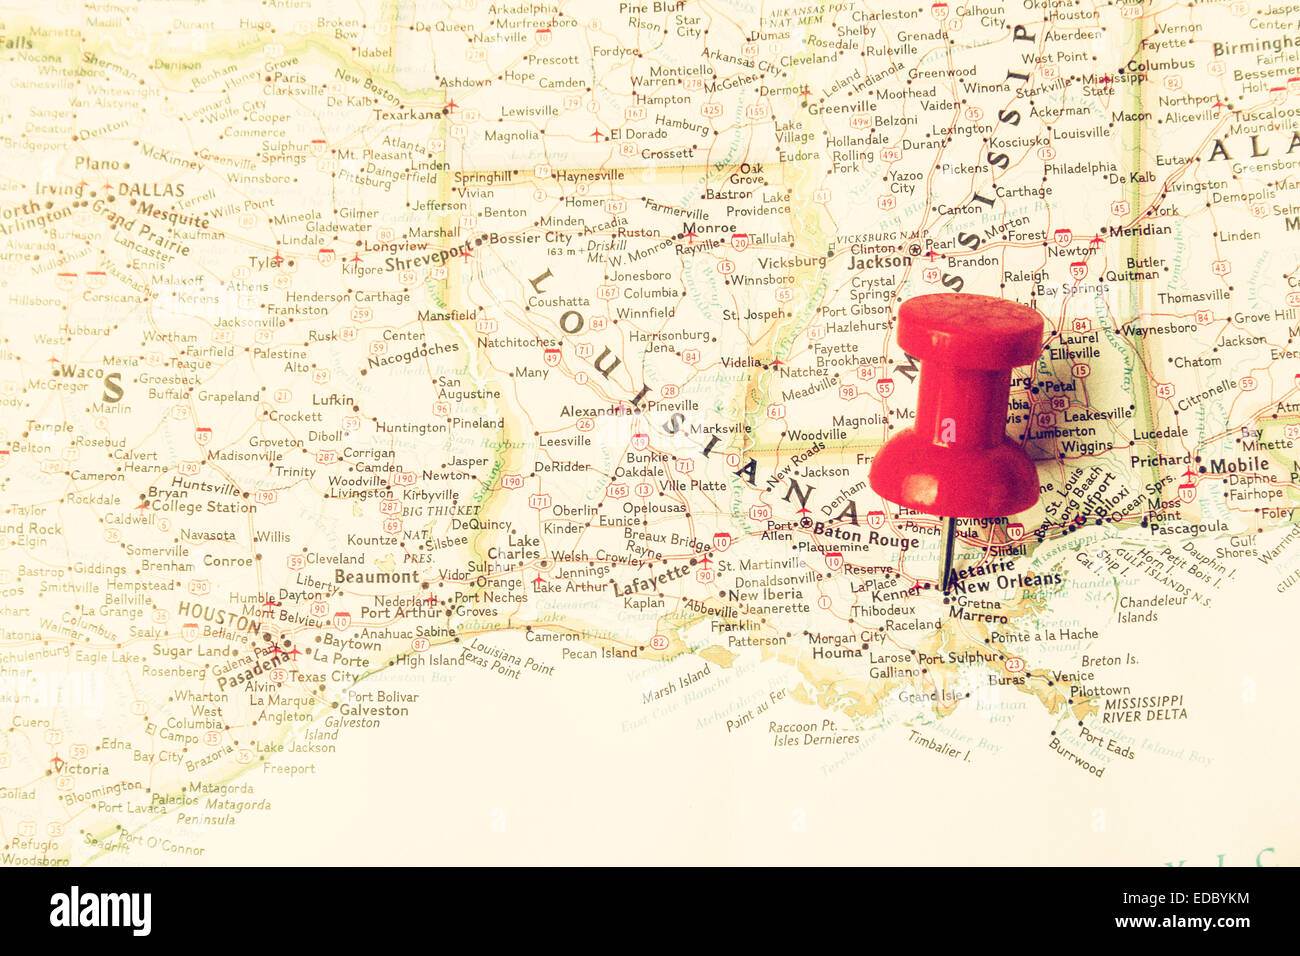 Red Pin On Map Pointing At New Orleans Louisiana Stock Photo